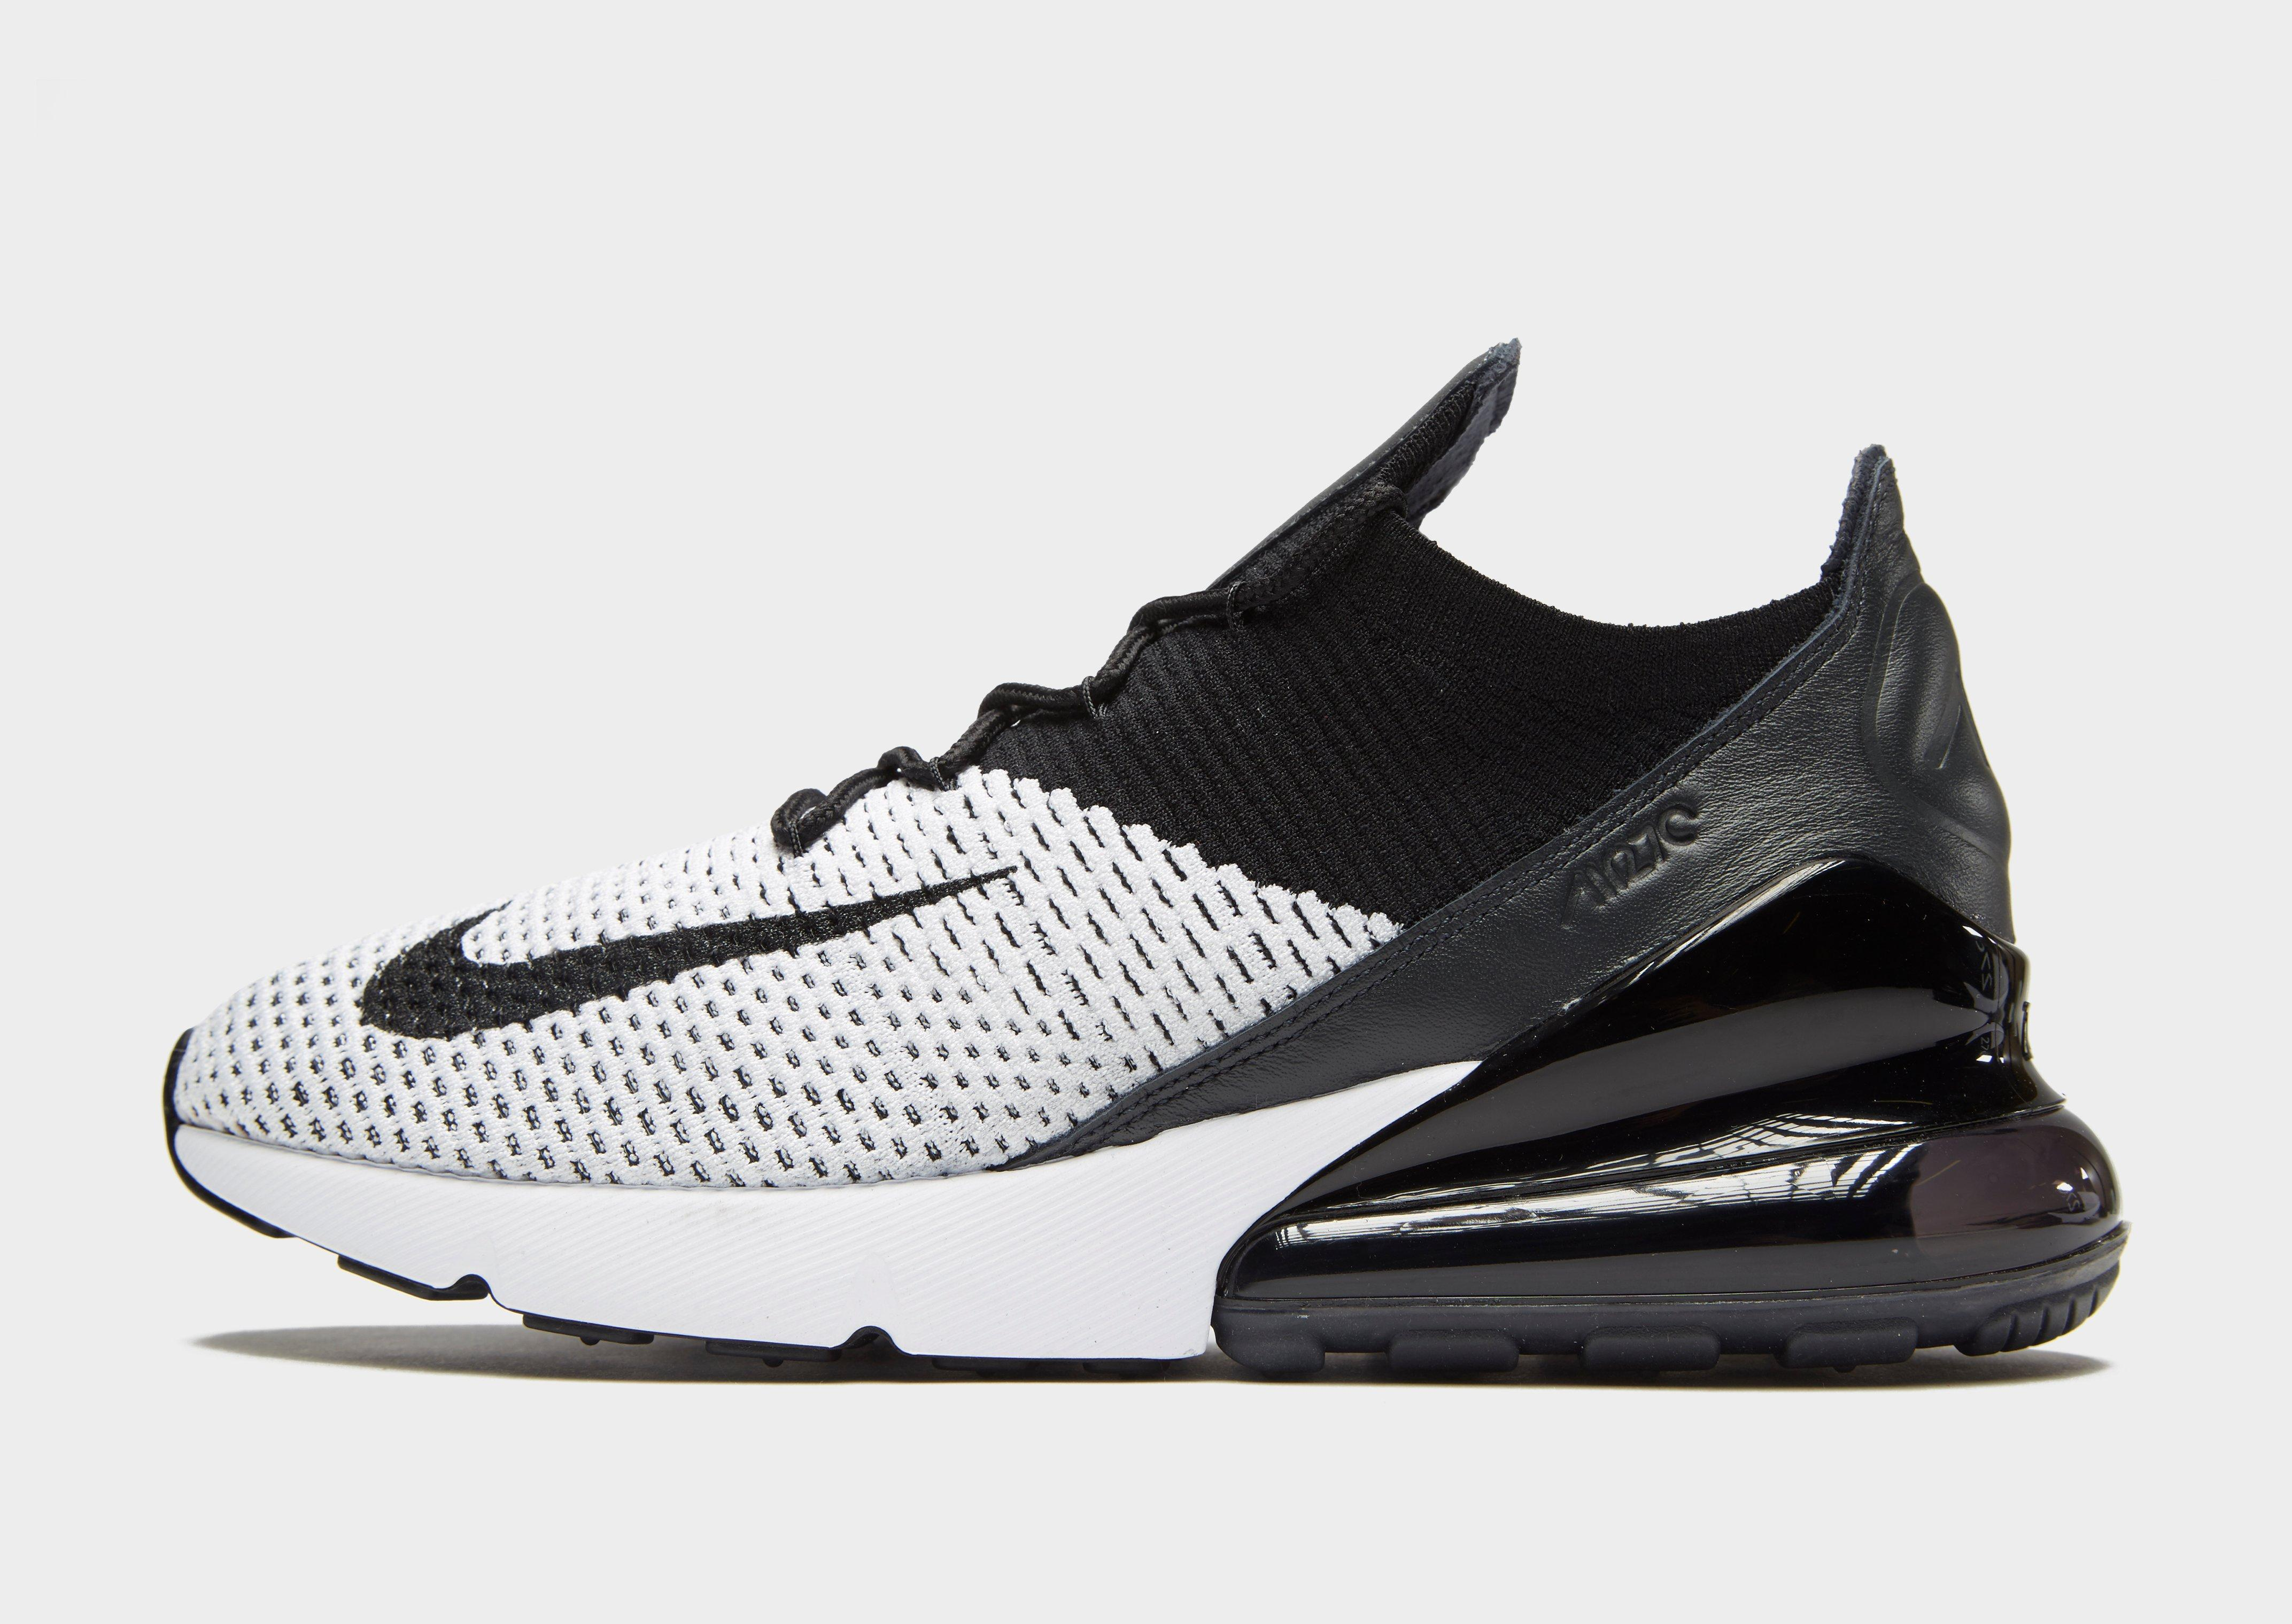 huge discount 2d5ba aef12 ... norway lyst nike air max 270 flyknit in black for men 2e6cd 06124